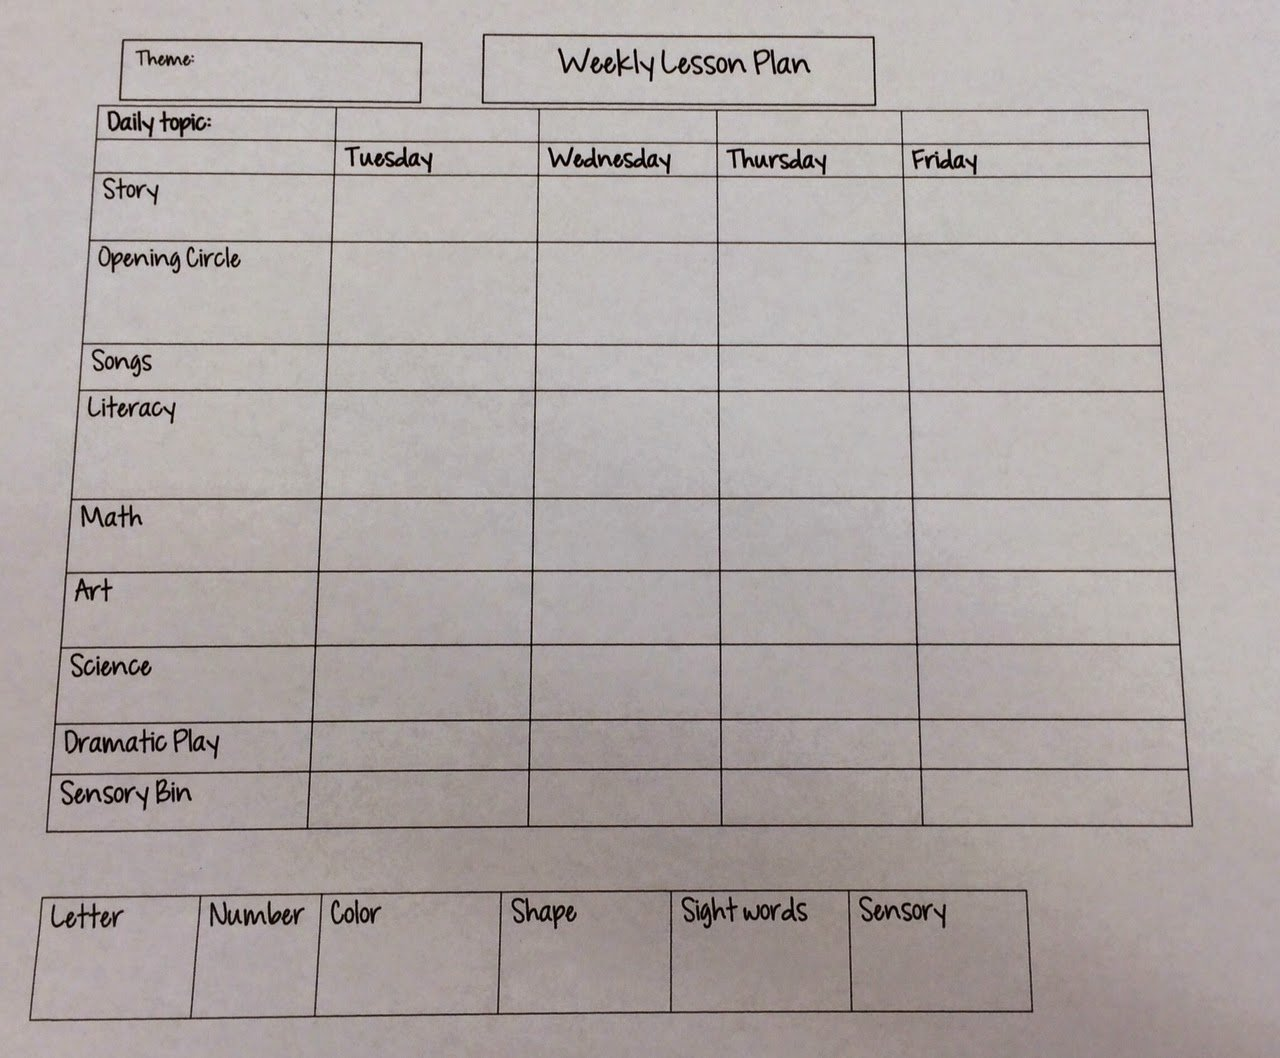 Daily Lesson Plan for Preschool Lovely Miss Nicole S Preschool Weekly Lesson Plan Template